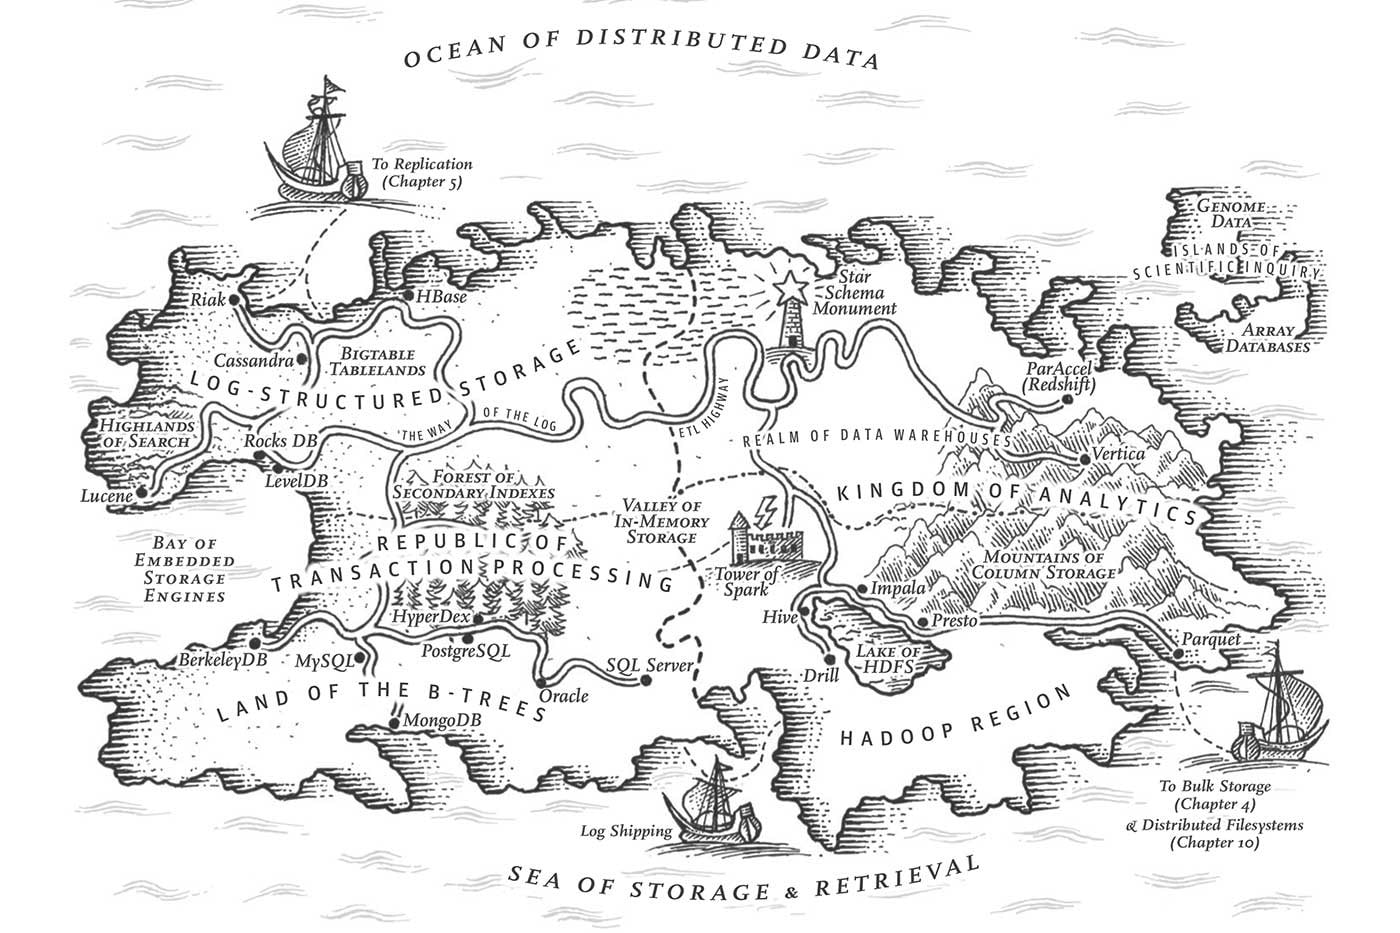 Drawing a map of distributed data systems